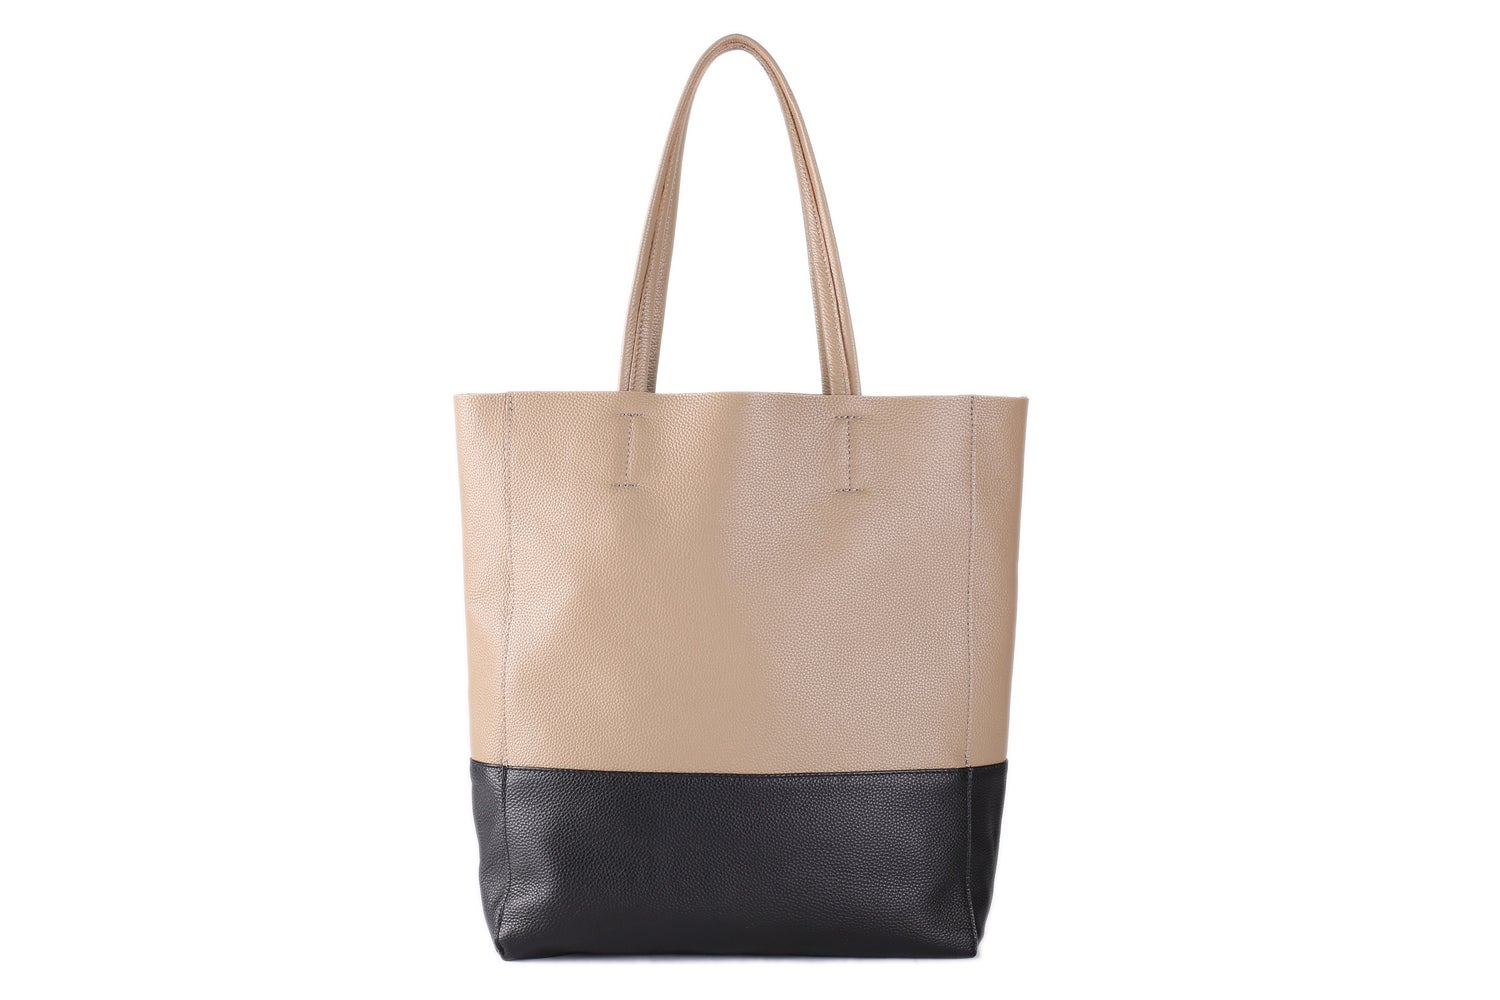 Full Grain Leather Tote Bag, Leather Shopper Bag, Women Leather Bag, Shoulder Bag, Diaper Bag